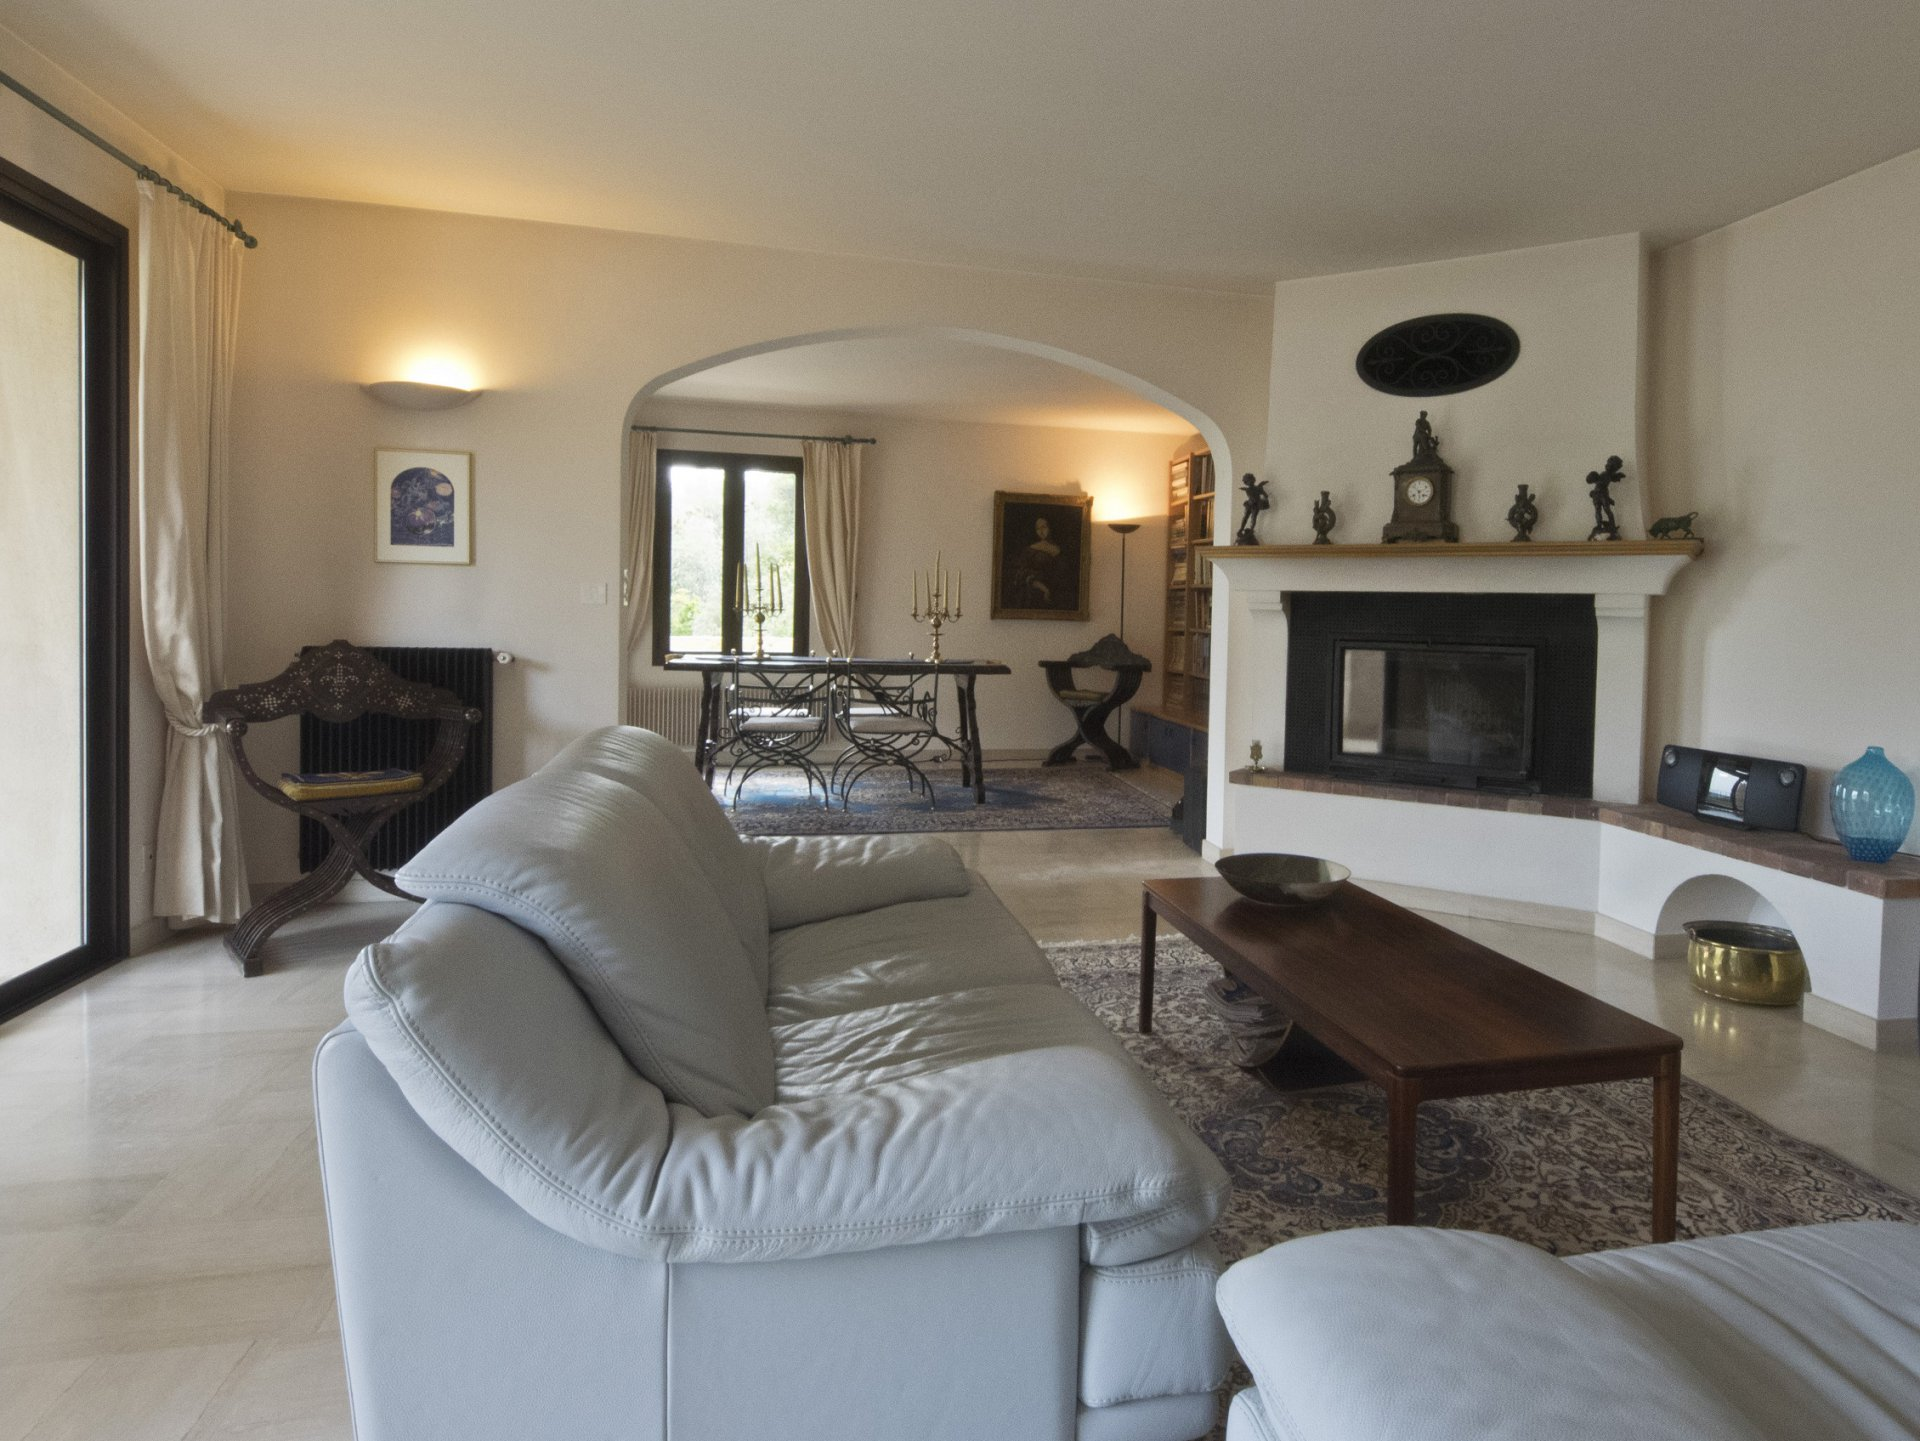 Pays de Fayence property on 1,1ha panoramic view 800m from the village